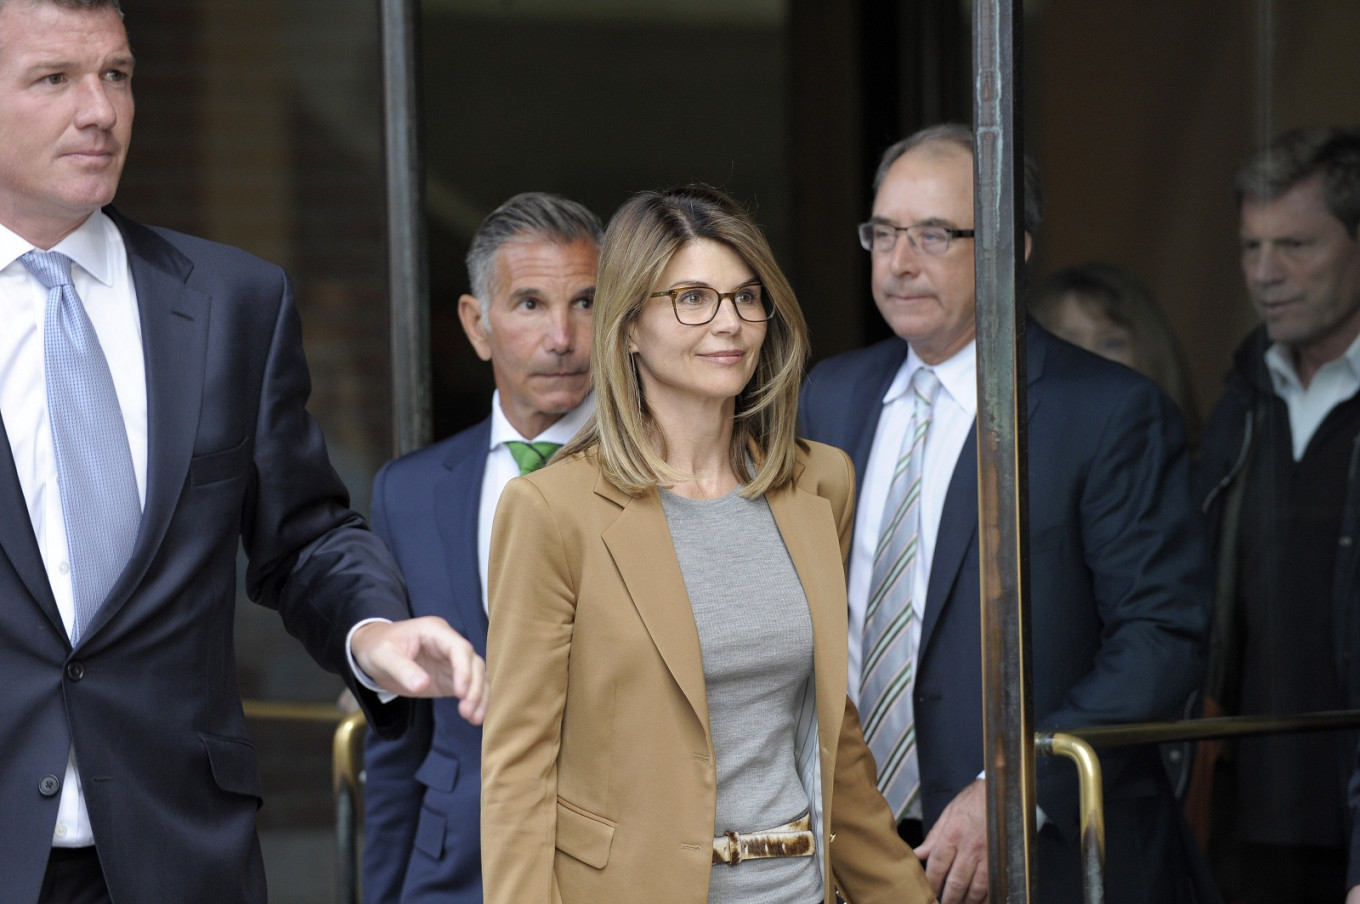 Story of US college admissions scandal coming to television